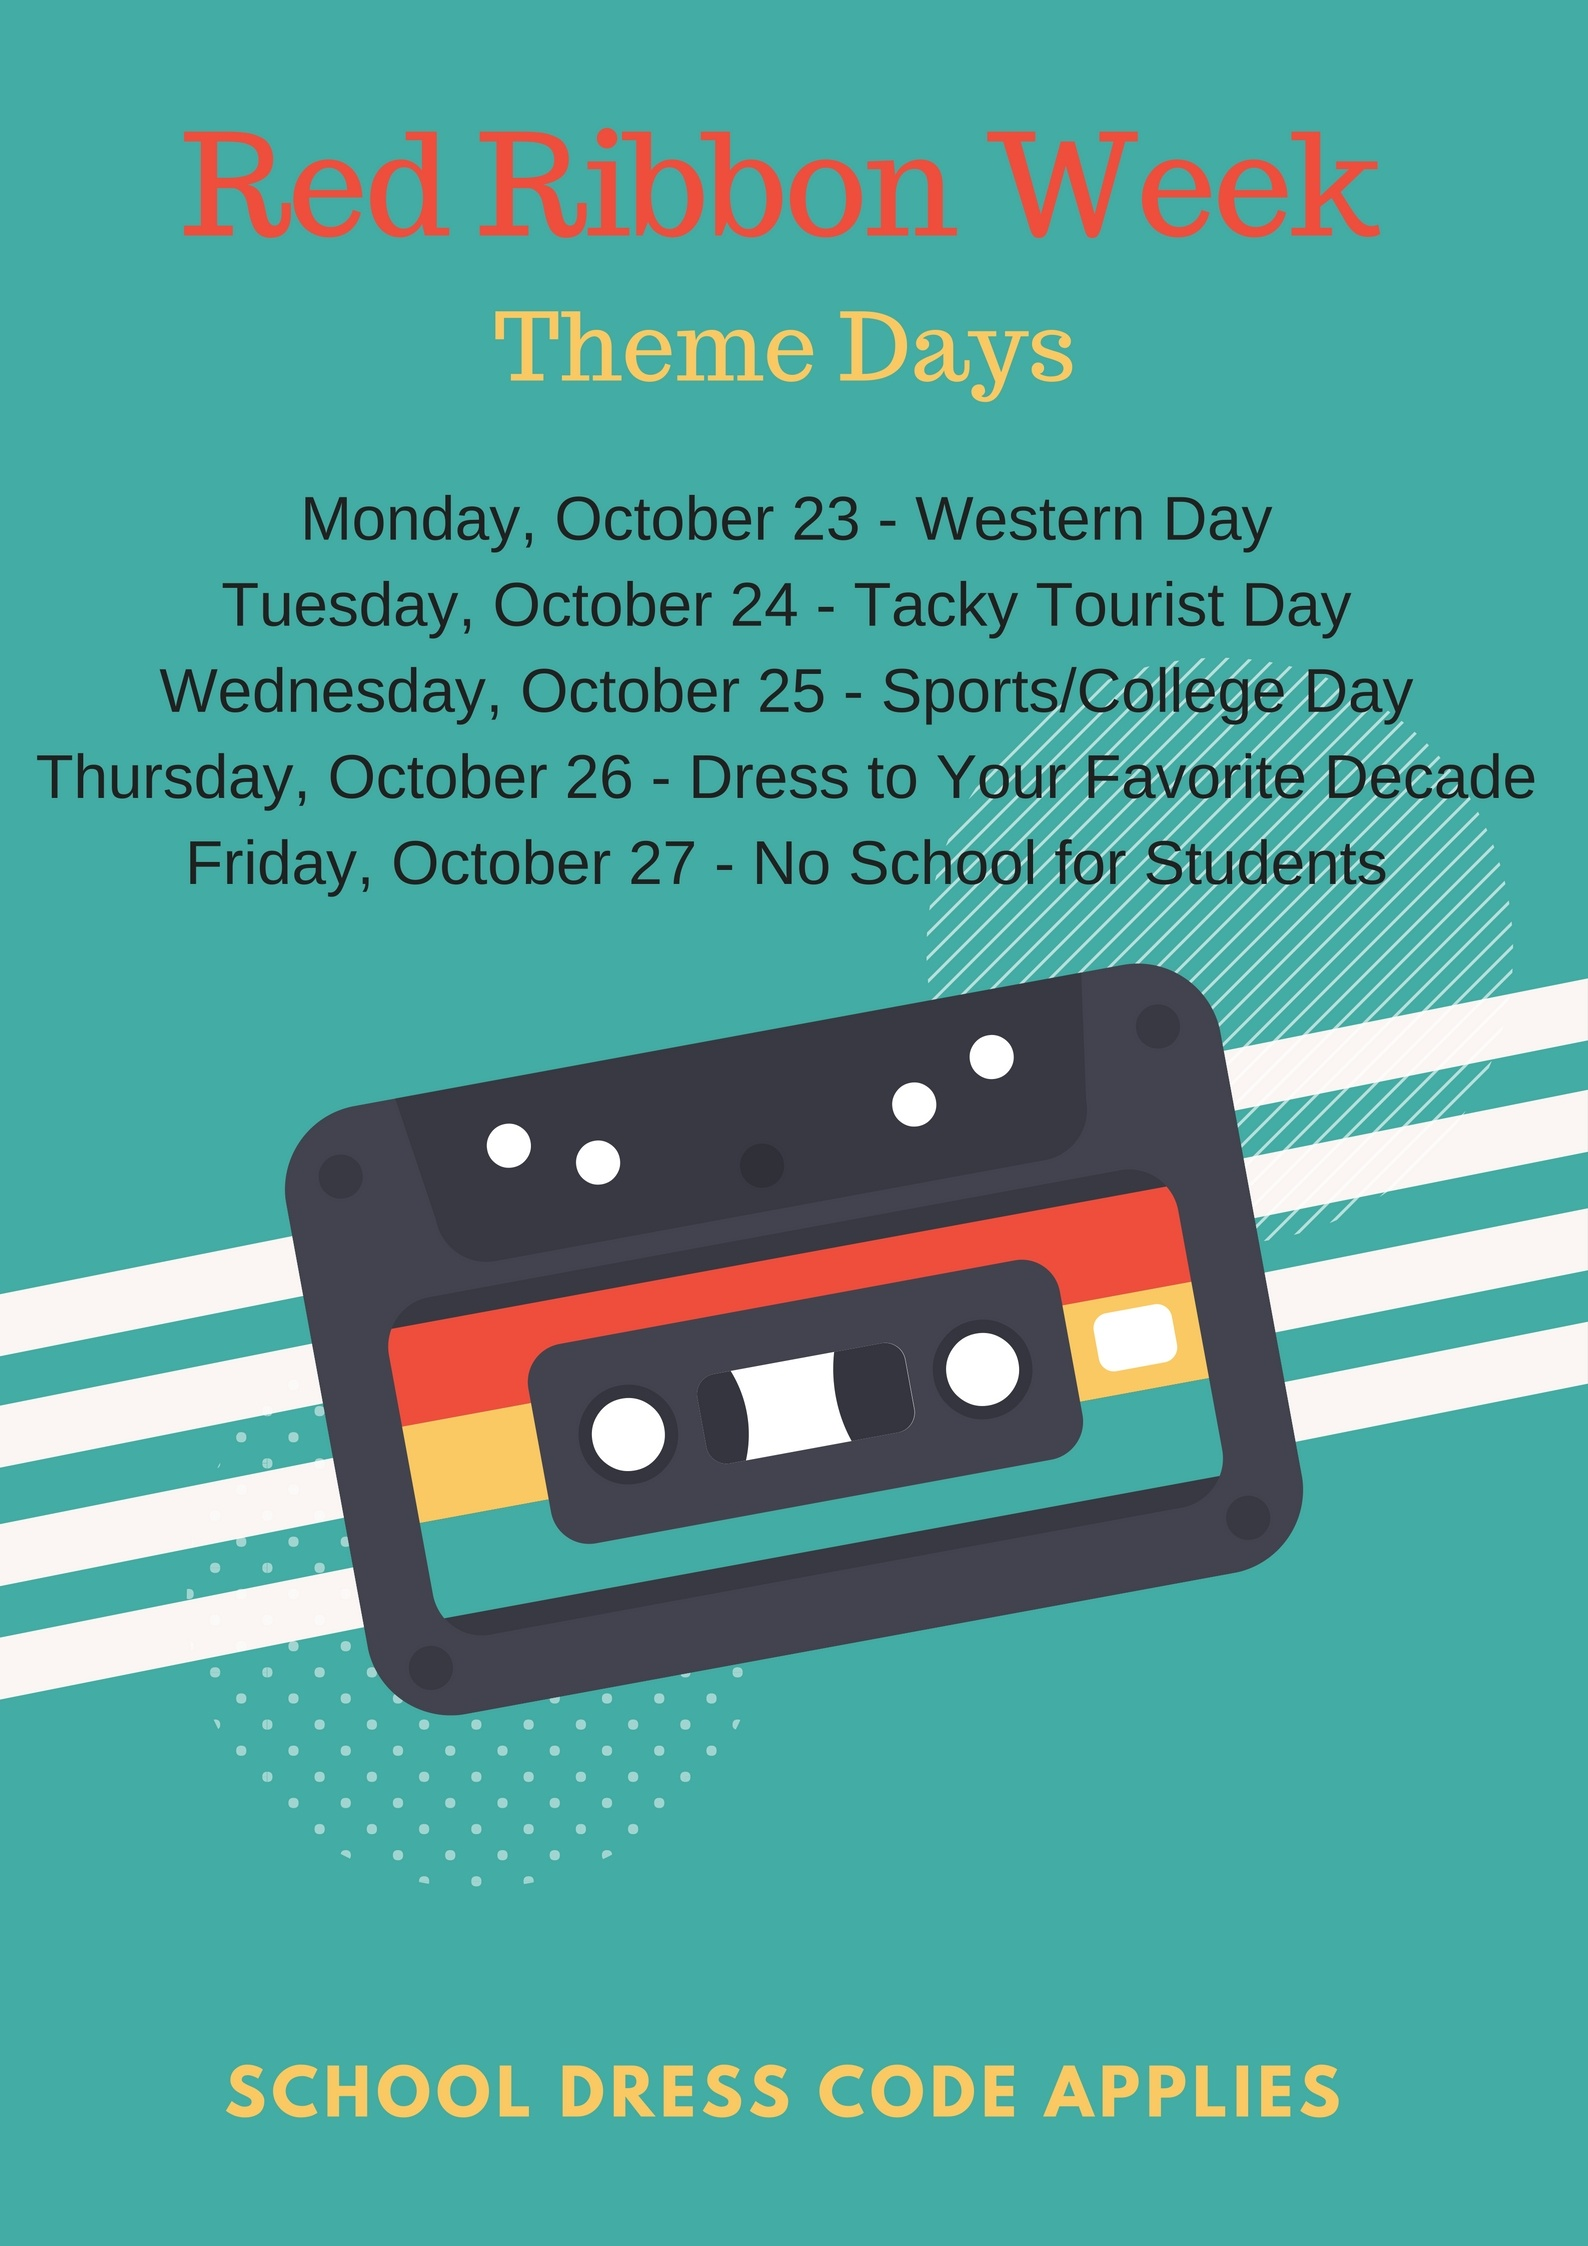 Red Ribbon Week Theme Days.jpg